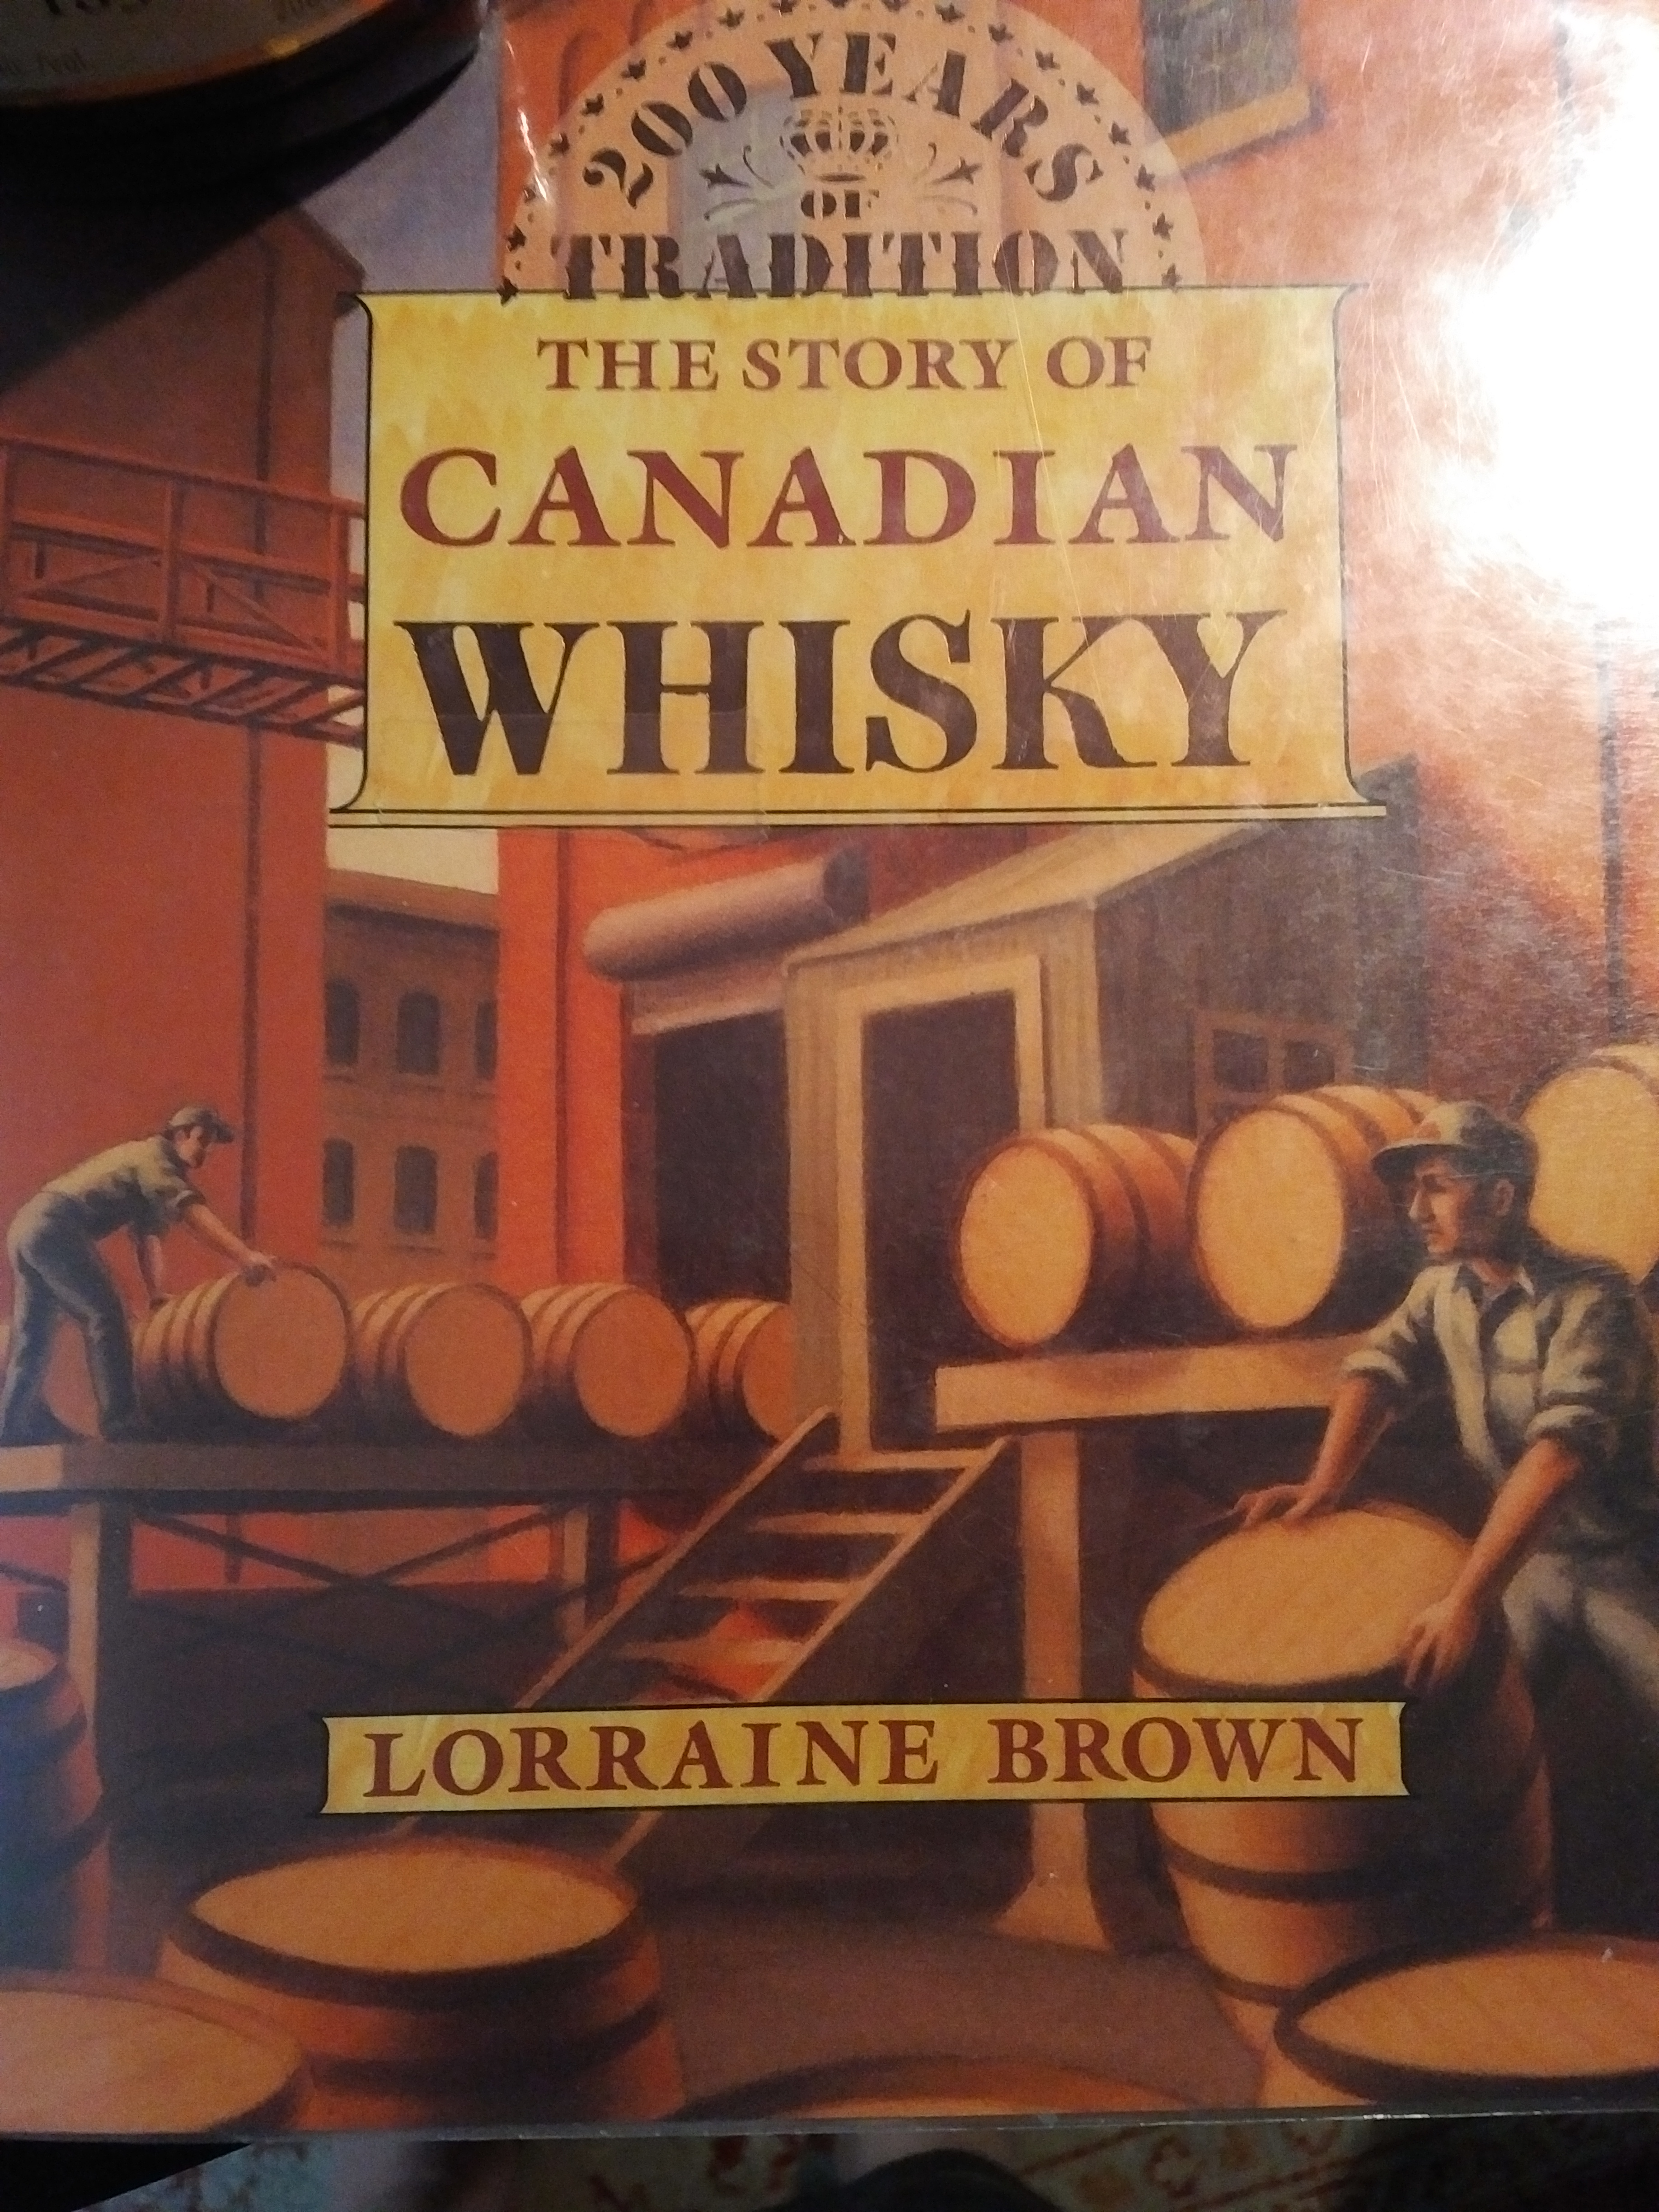 Beer Et Seq Page 30 Other Drinks Food History Diagram Of How A Moonshine Still Works Lorraine Brown Was Also An Experienced Journalist Who Focused On Science And Environmental Topics Together With Her Research Work For The Exhibition